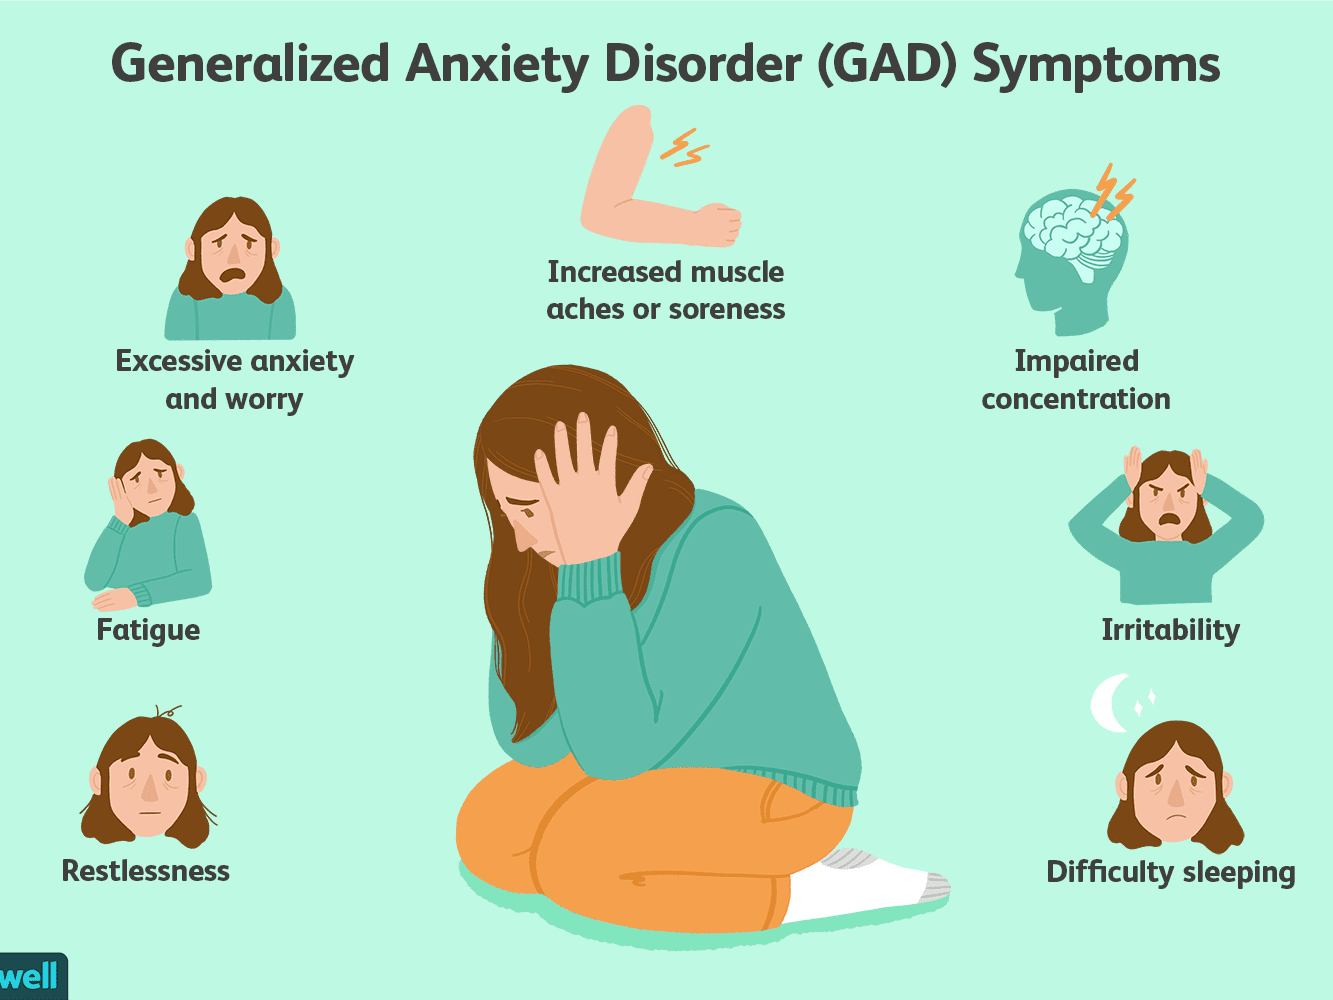 DSM-5 Criteria for Diagnosing Generalized Anxiety Disorder